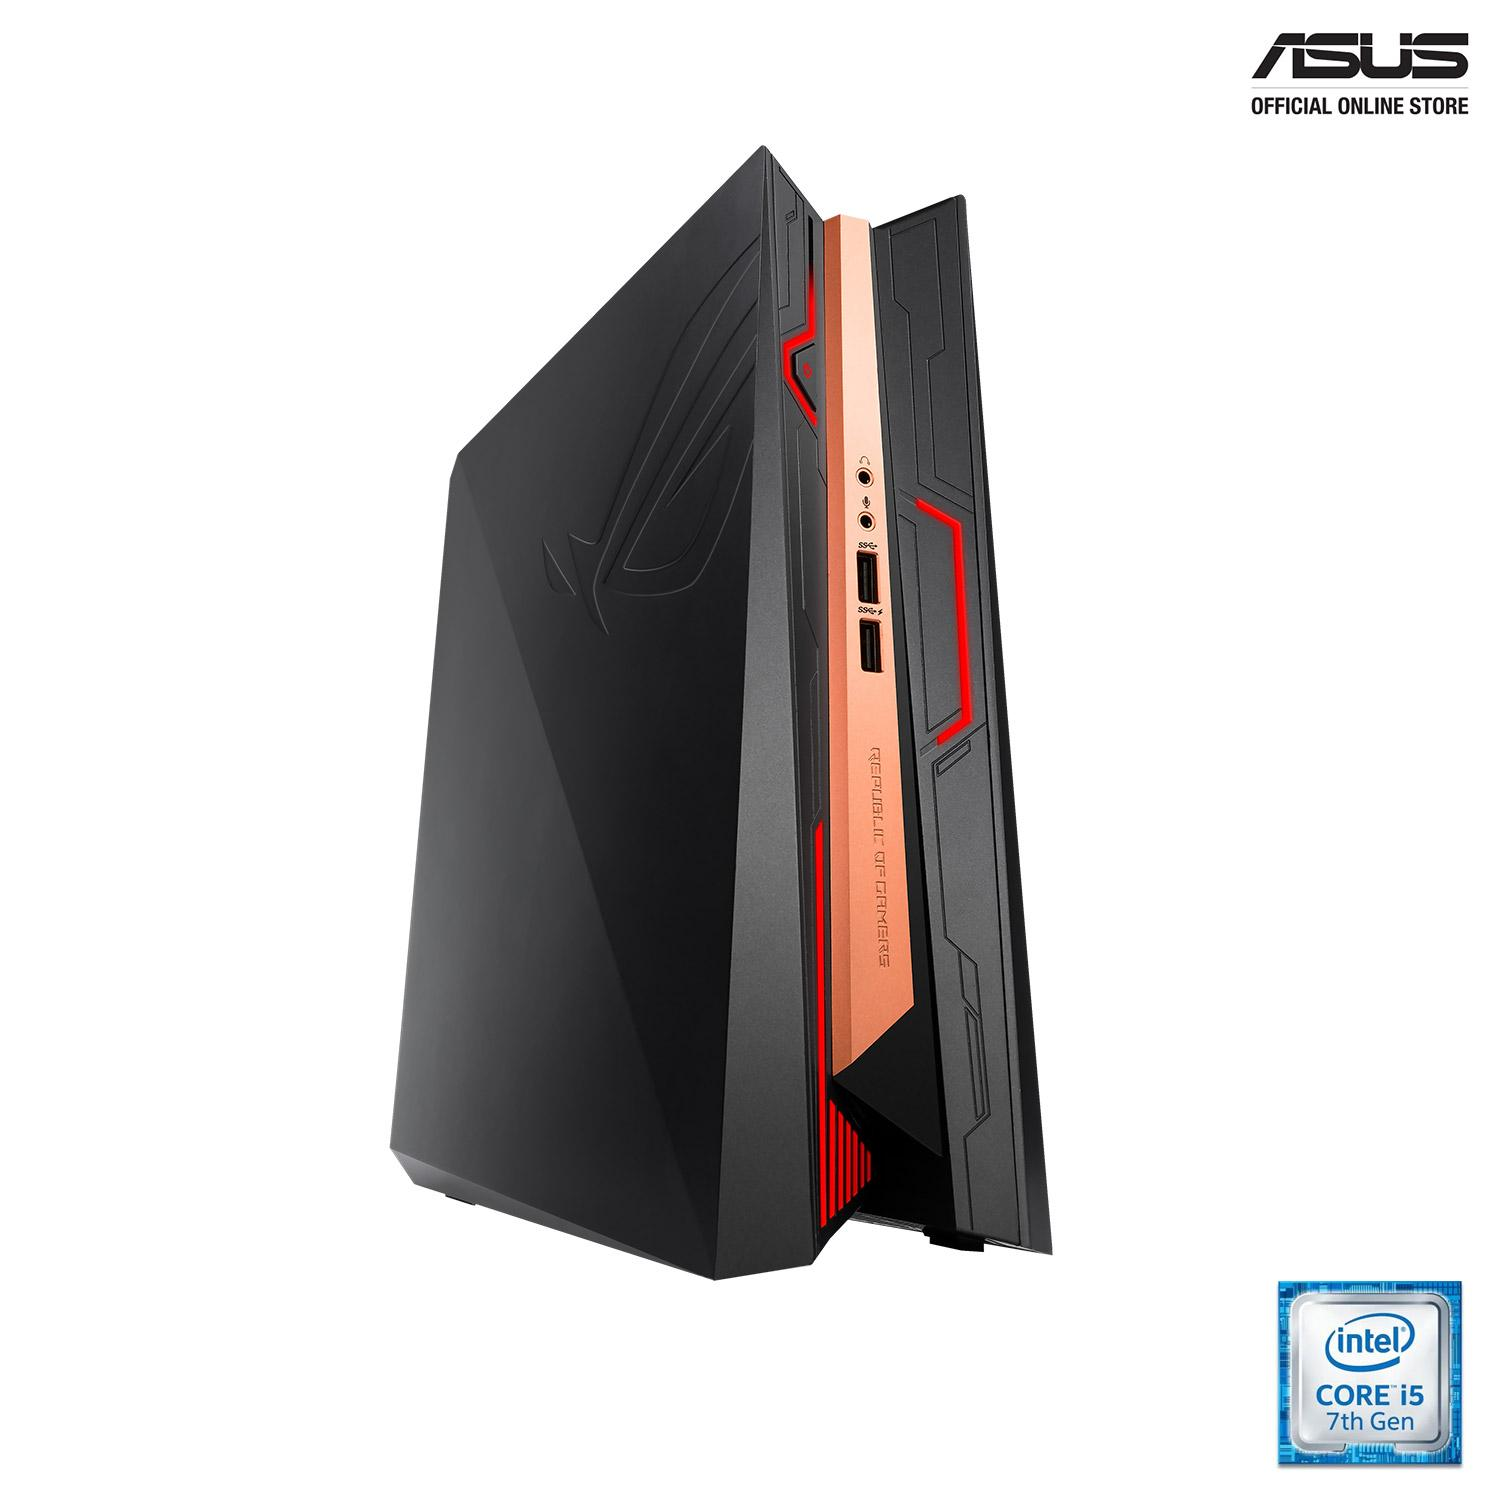 ASUS ROG GR8 II (GR8 II-T080Z)VR-ready mini gaming PC with custom ASUS GeForce GTX 1060 6G graphics, Windows 10 , up to desktop-grade Intel Core i5 processor, Aura Sync RGB LED, 4K, DDR4 RAM, Intel 802.11ac Wi-Fi